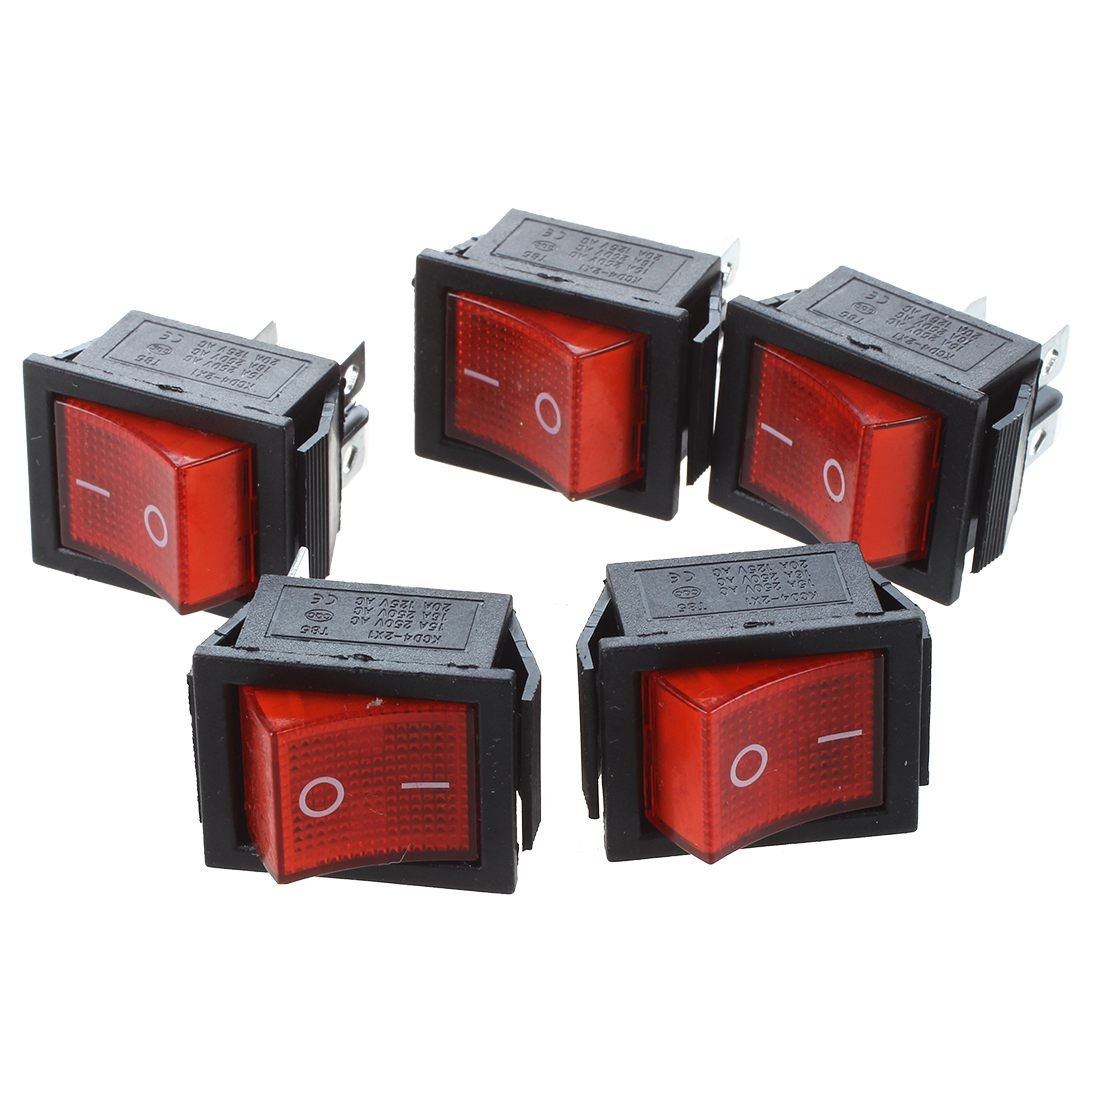 TOOGOO(R) 16A/250V 20A/125V AC Red Neon Light ON/OFF DPST Boat Rocker Switch 5 Pcs by TOOGOO(R) (Image #1)